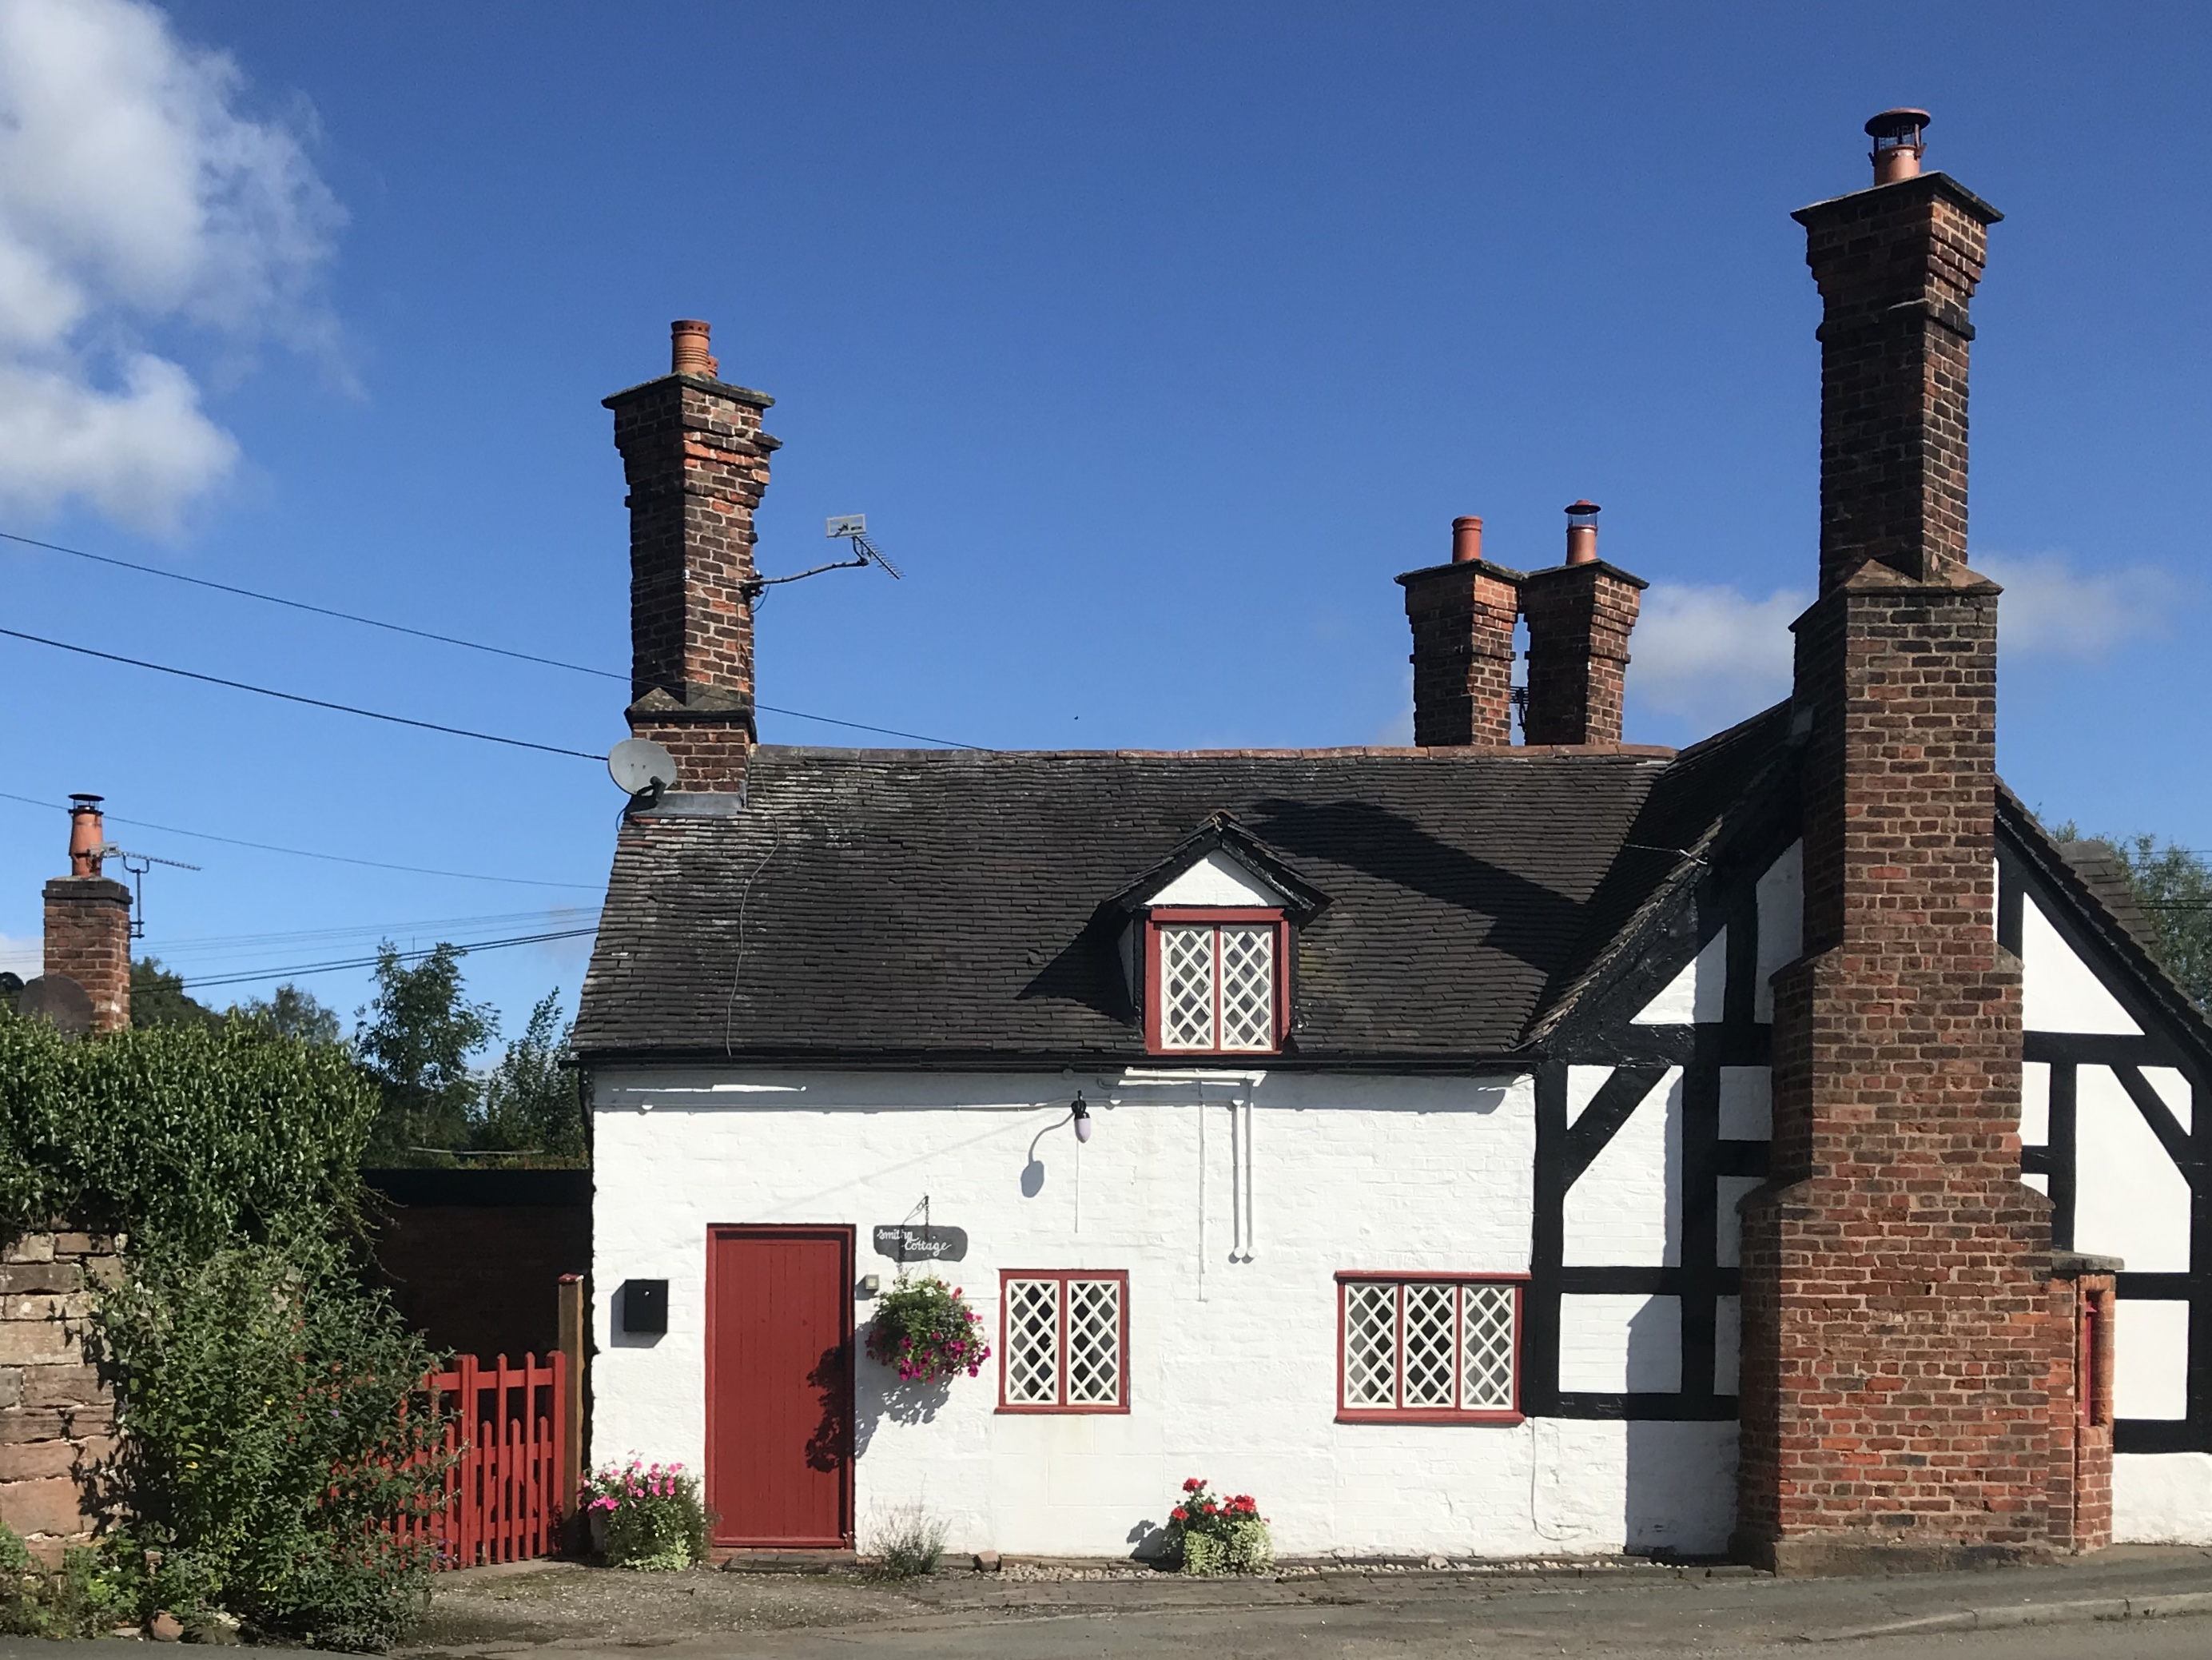 A small black and white cottage with large red brick chimneys